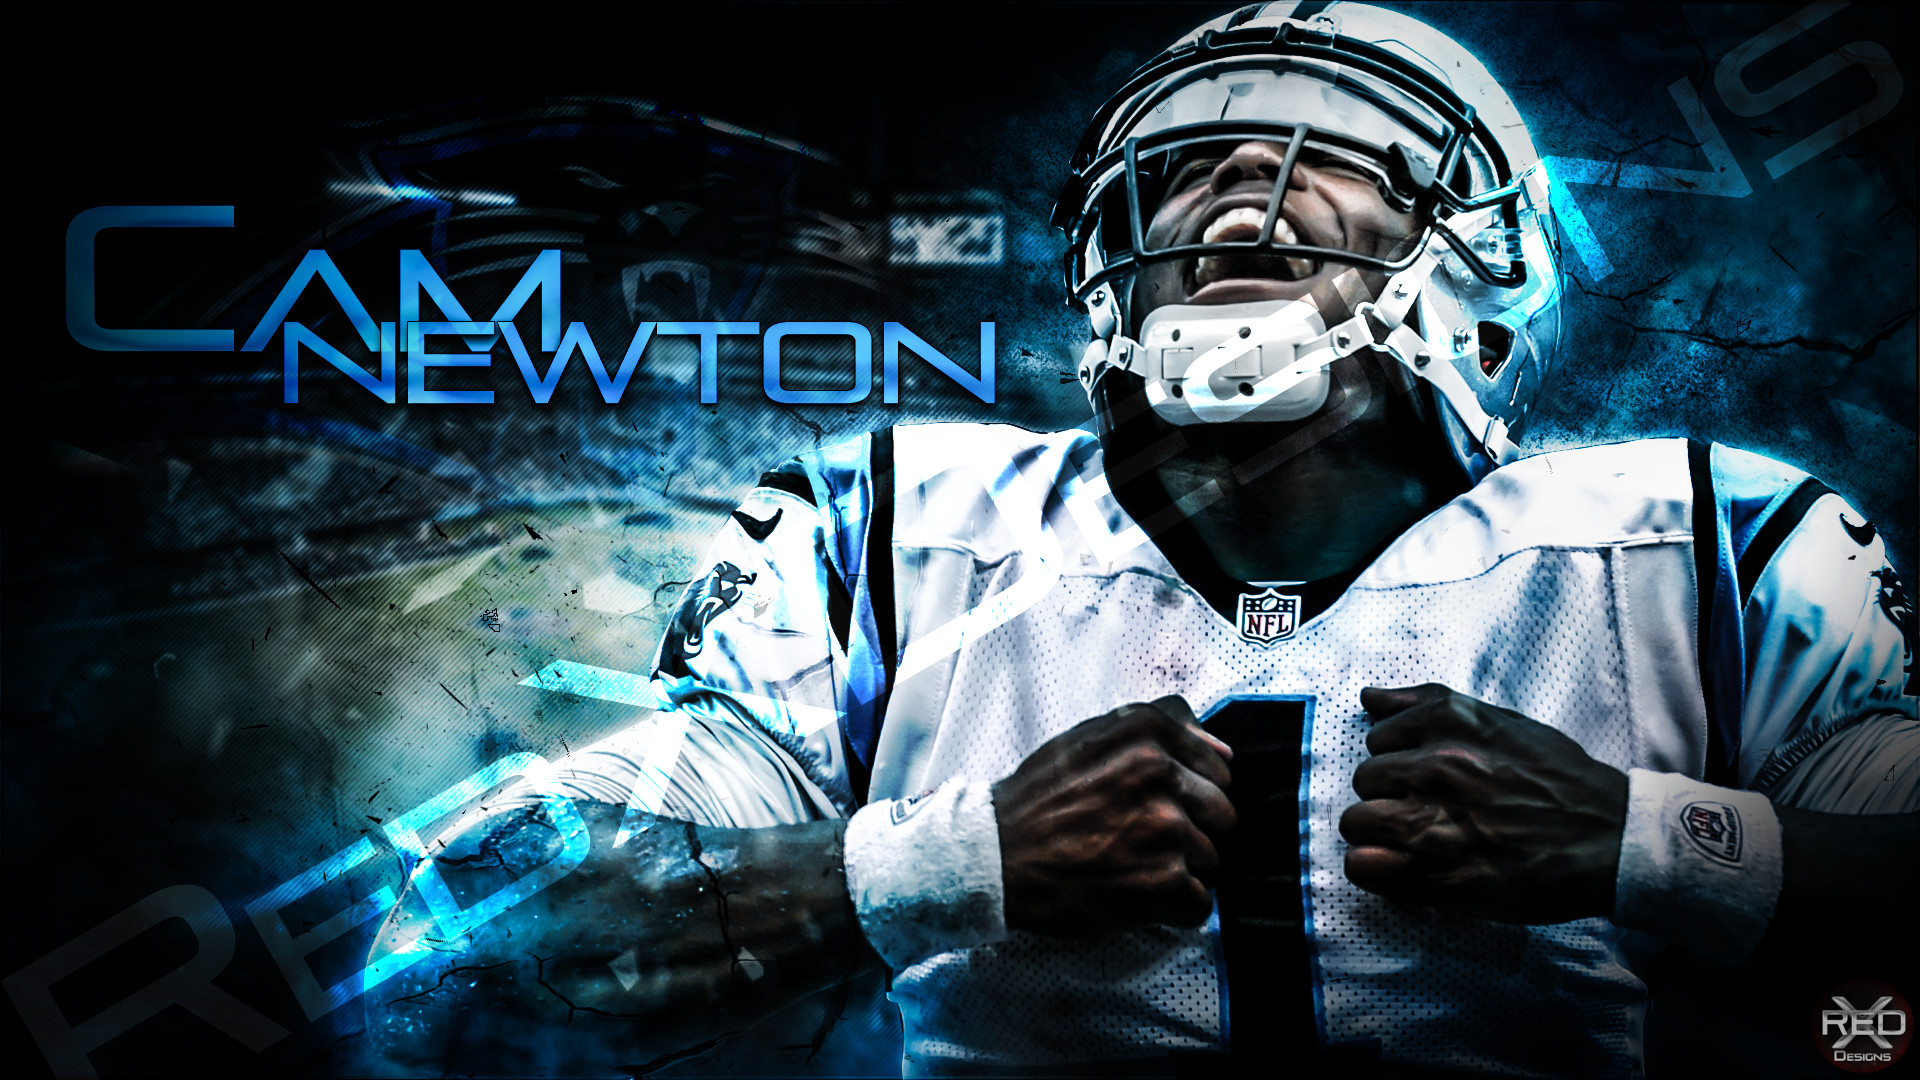 Cam newton wallpaper for sale – Graphics – Off Topic – Madden NFL  18 Forums – Muthead